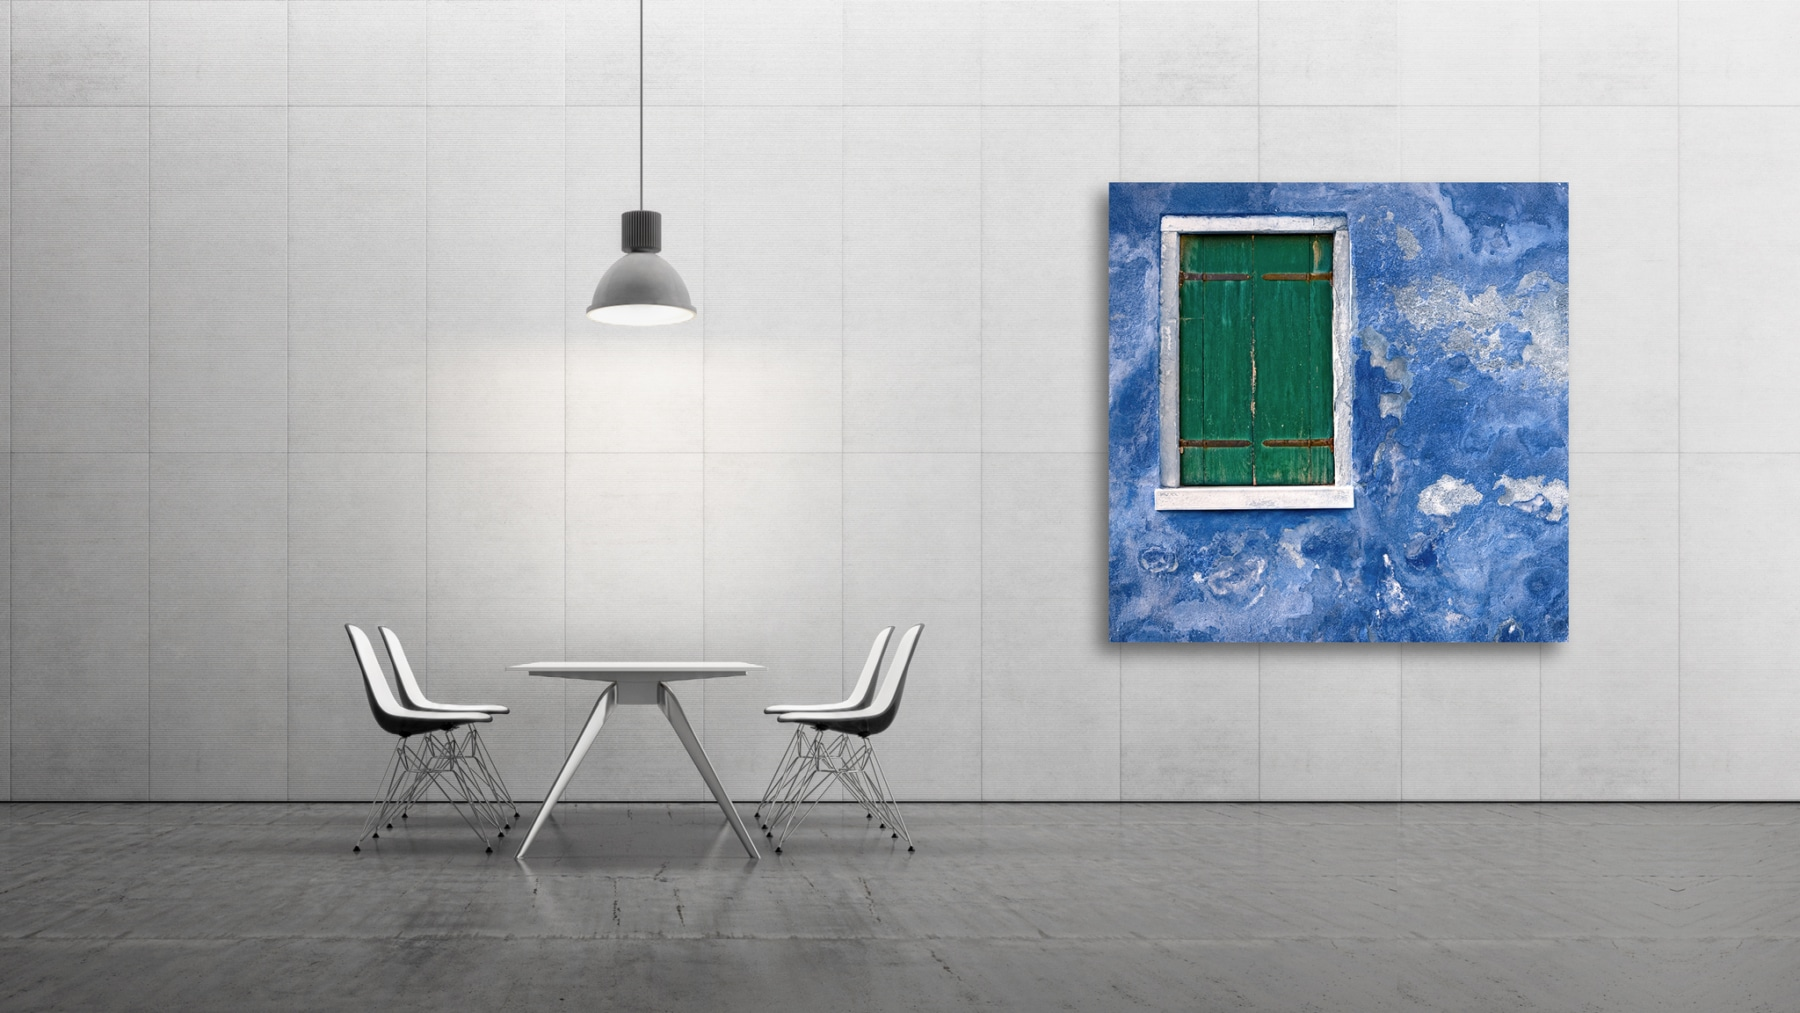 stressed blue wall, Fine Art, Color, Farbe, Italy, Venedig, Burano, Gerry Pacher